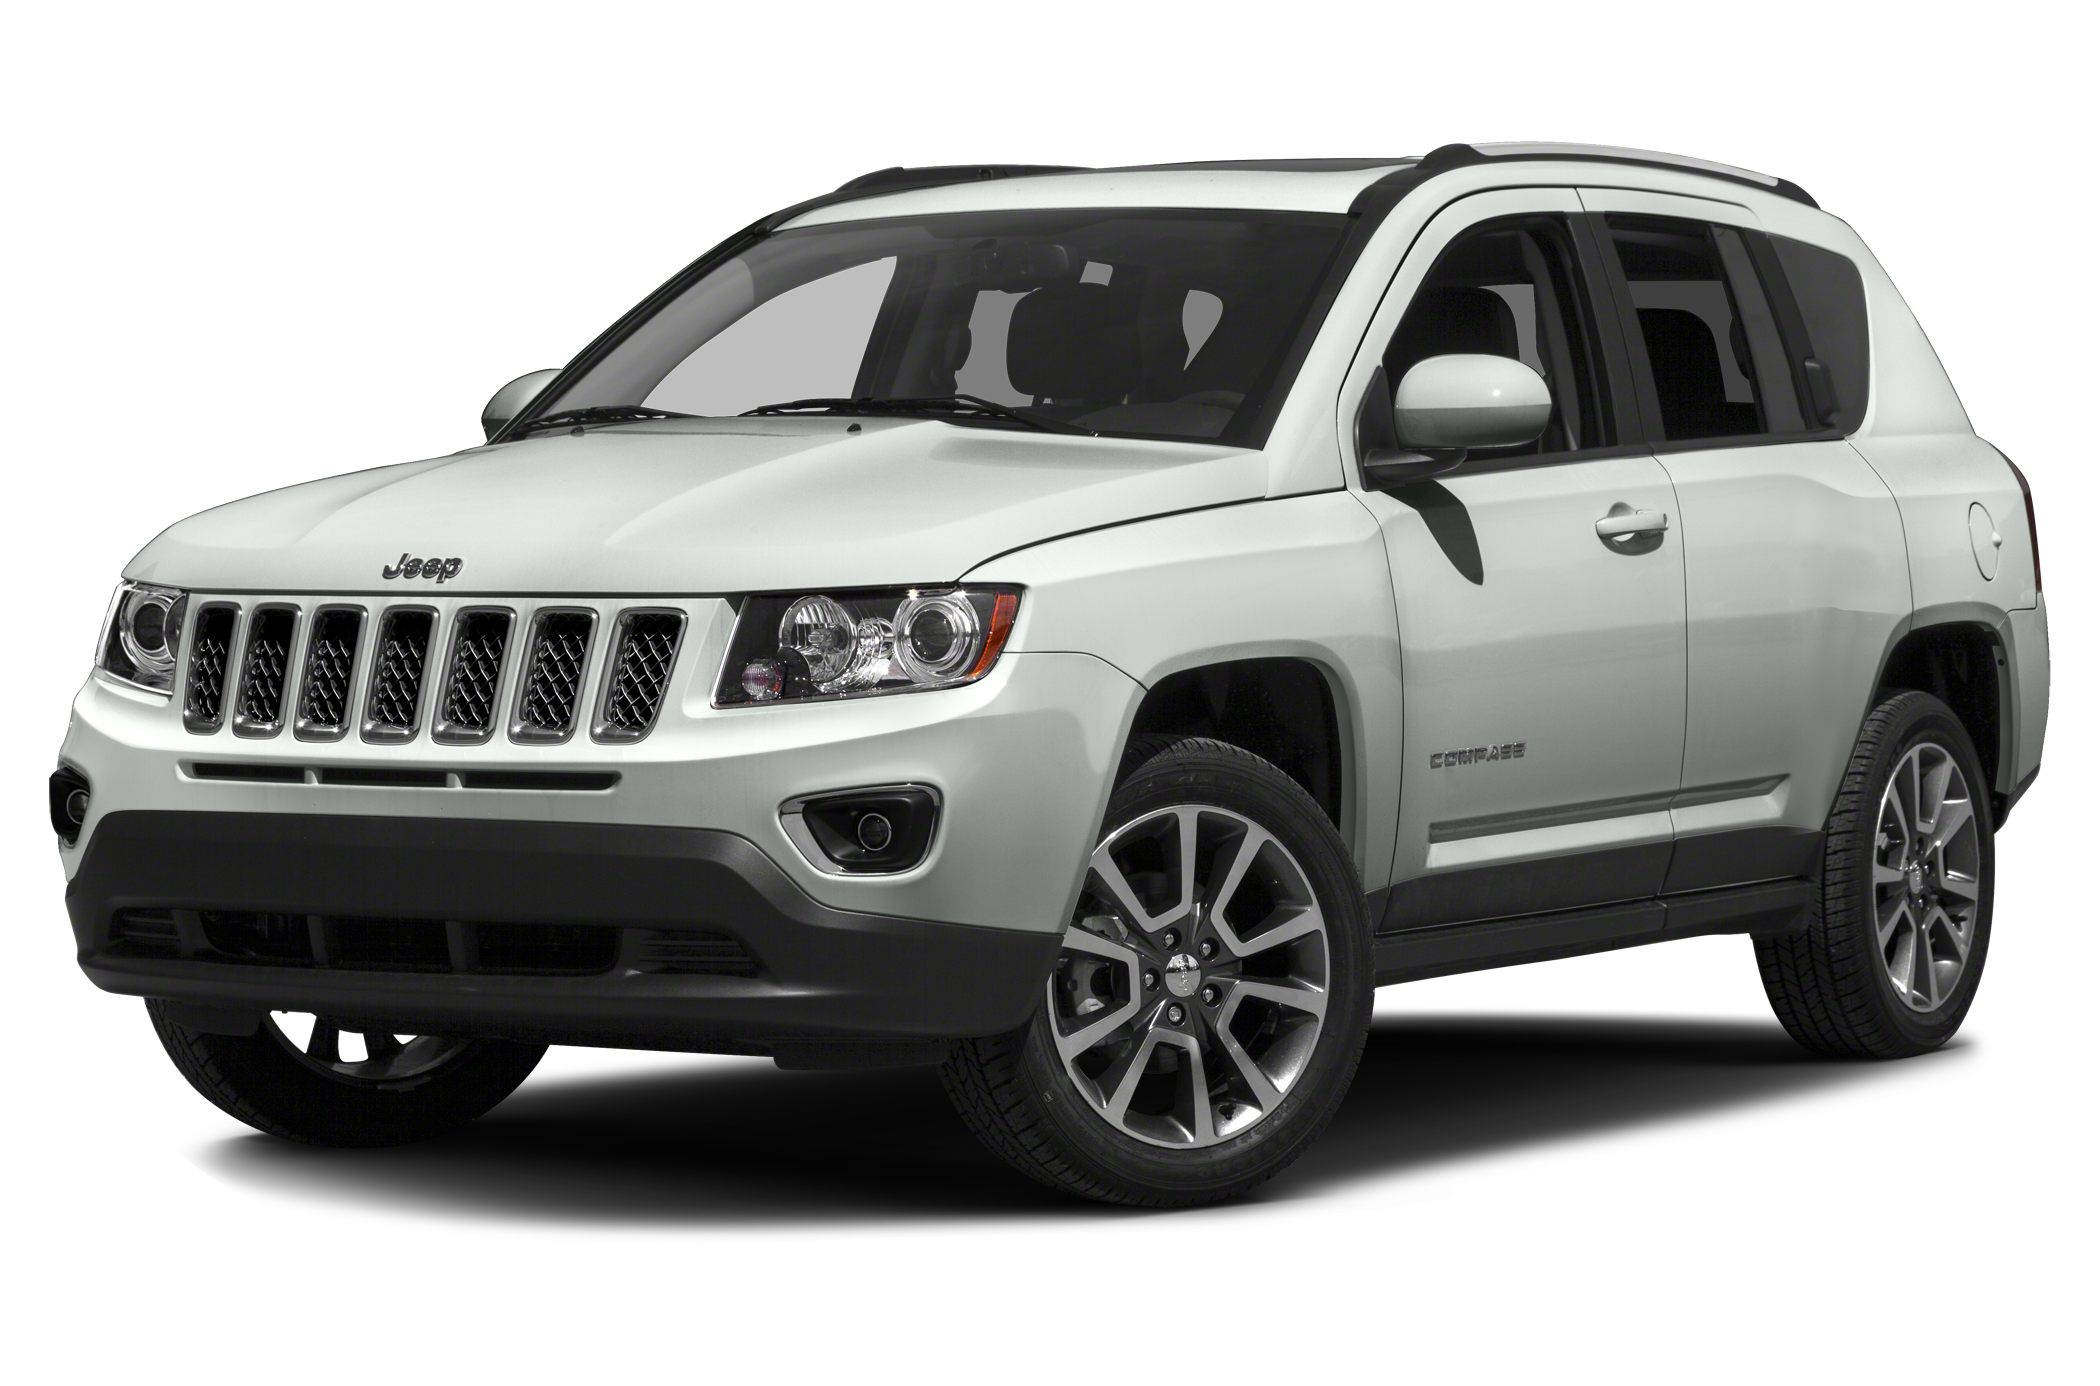 2015 Jeep Compass Sport SUV for sale in Los Angeles for $21,985 with 0 miles